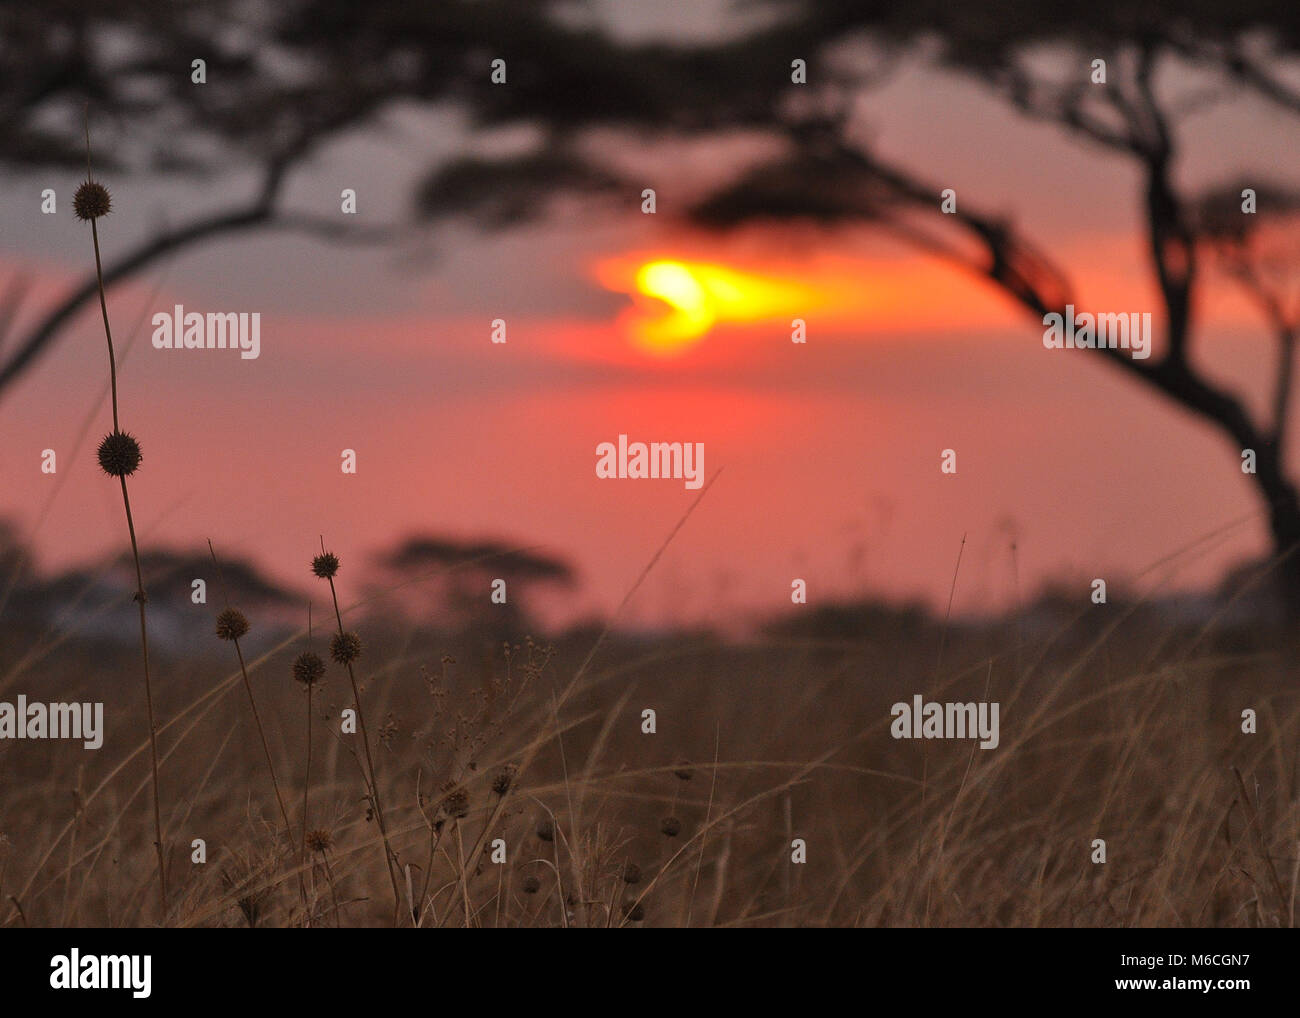 Sunset captured in the Serengeti national park, Tanzania. - Stock Image